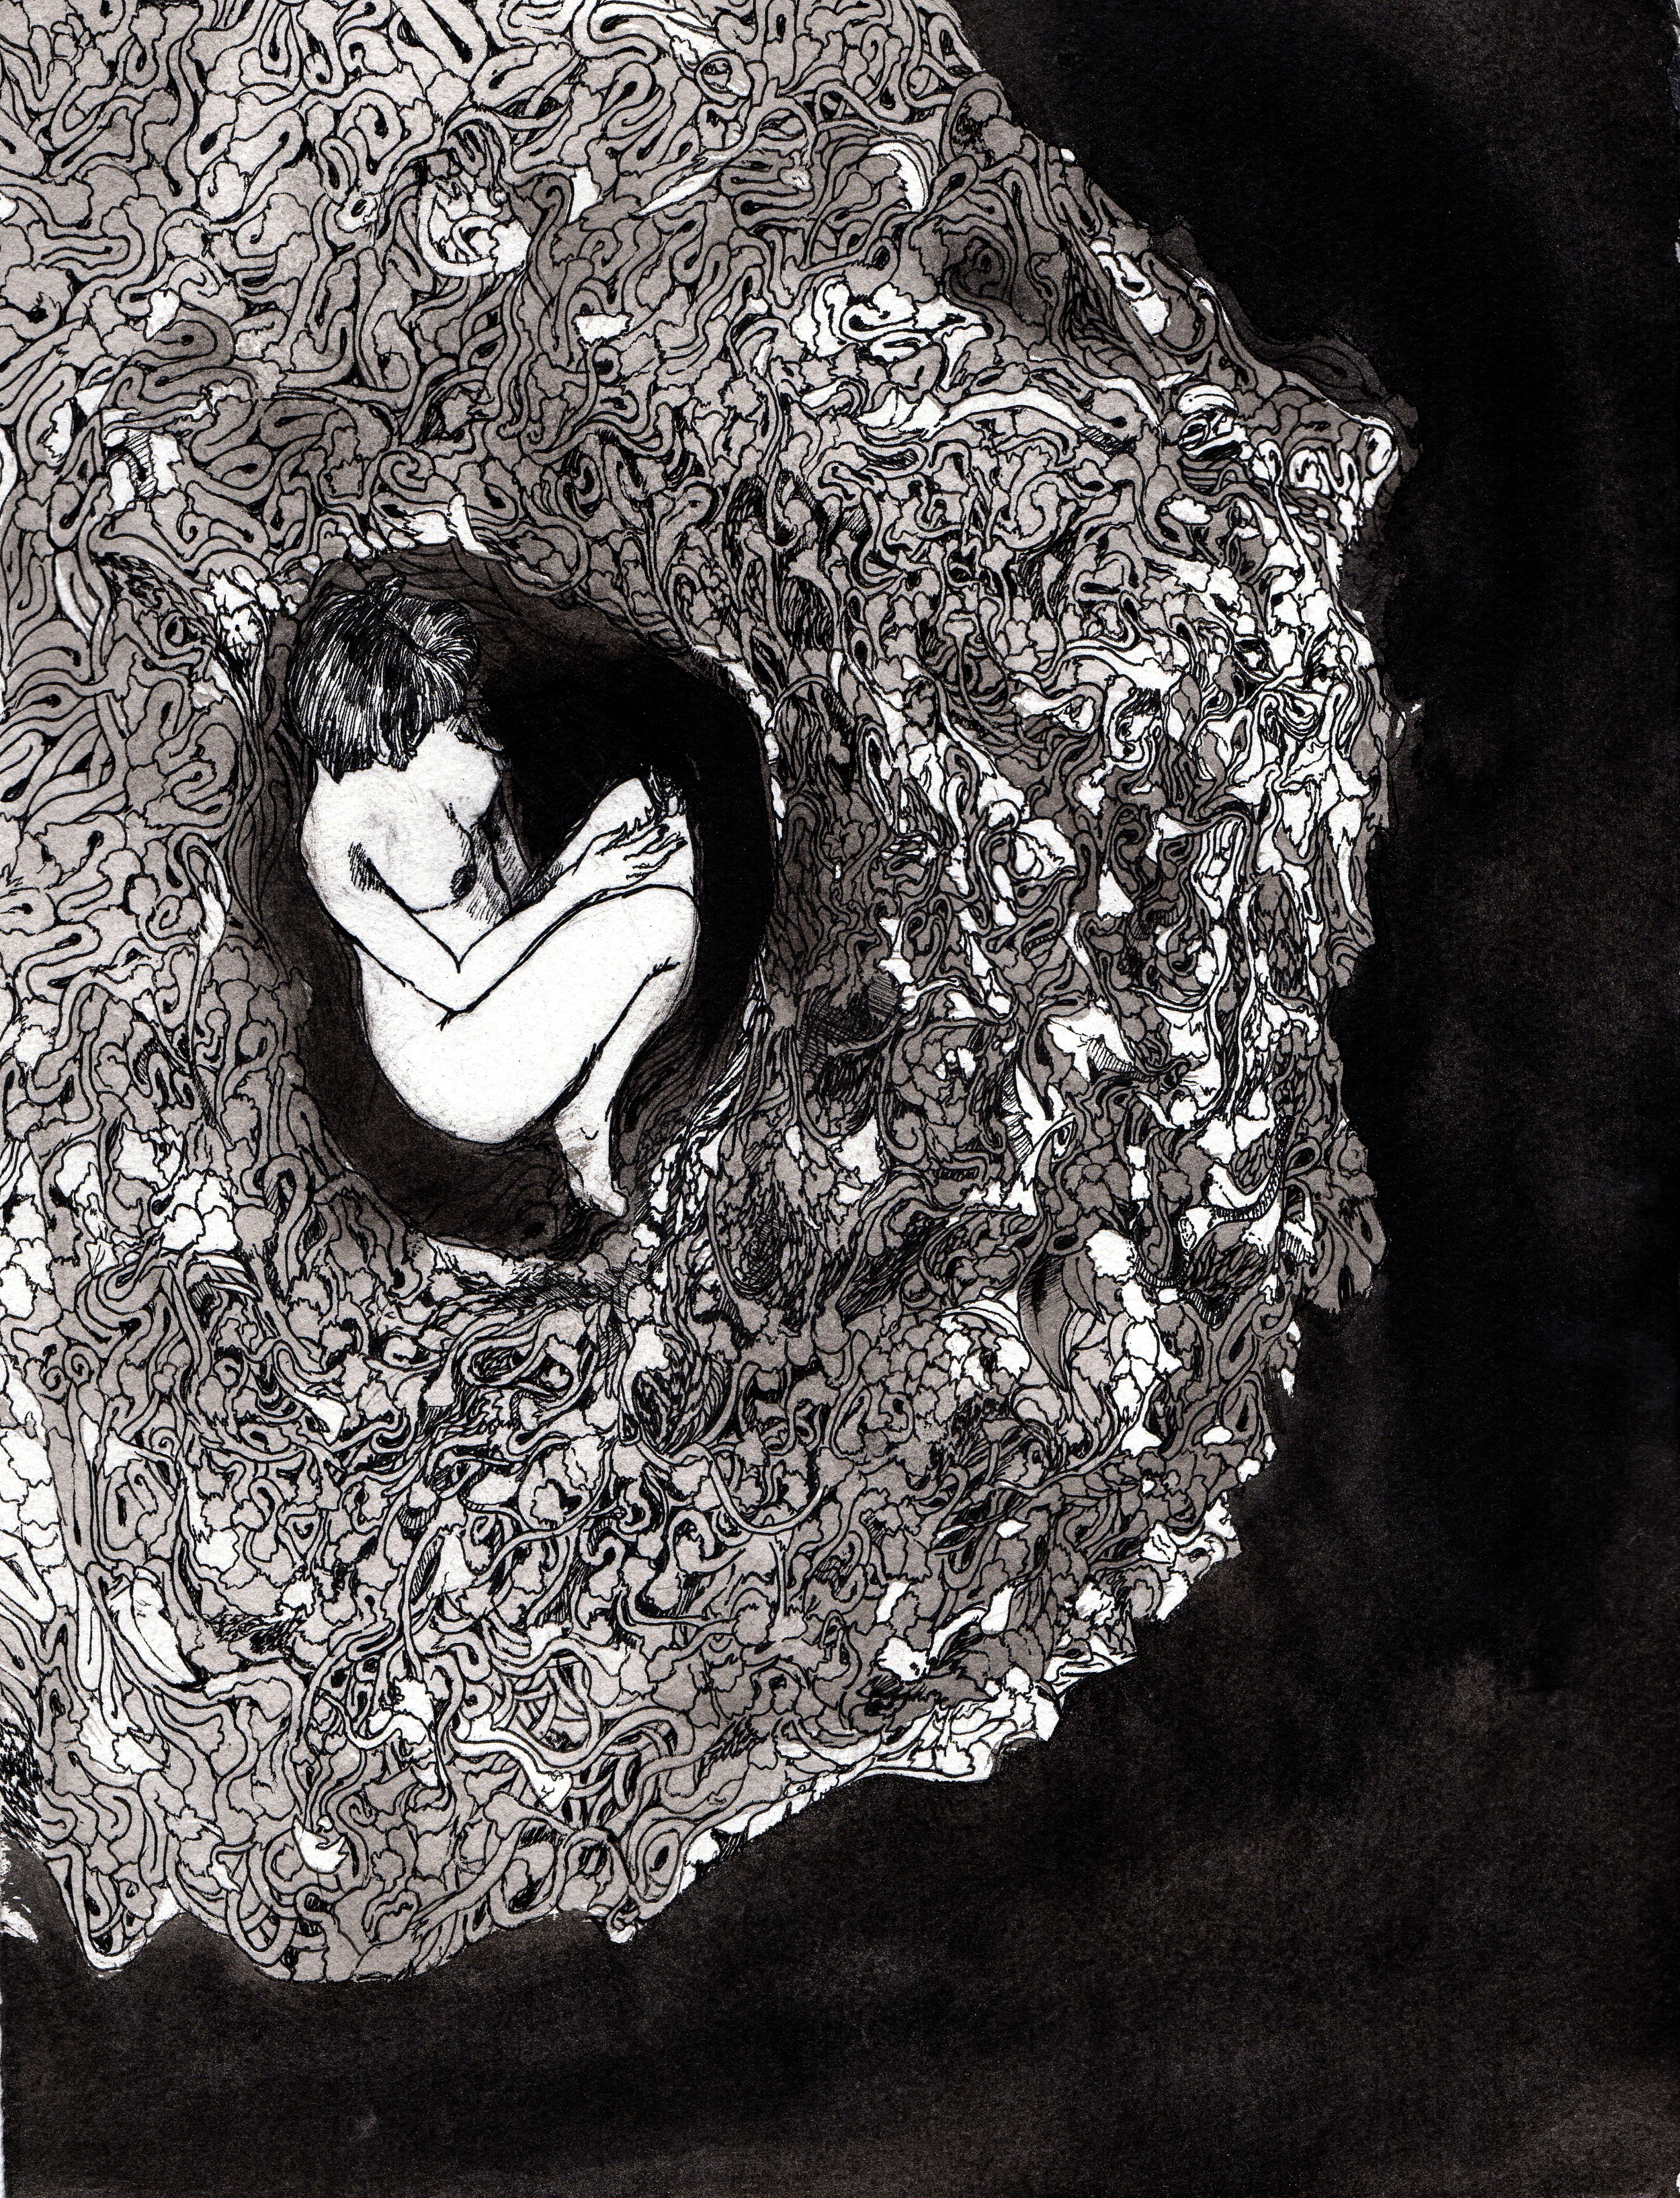 In her womb.  2013. 12 x 15 inches. Ink wash on paper.